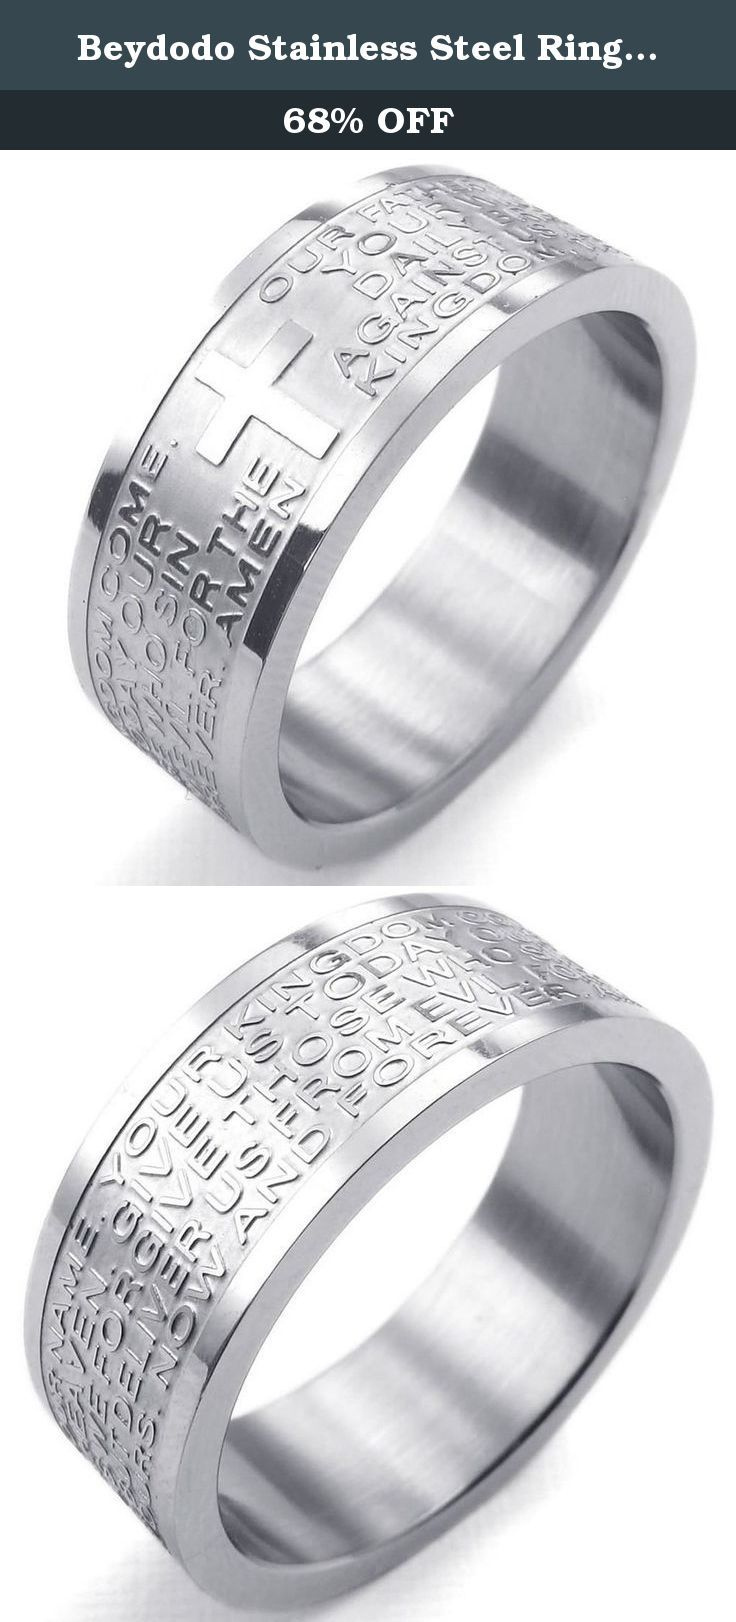 Beydodo Stainless Steel Ring (Punk Bands) English Lord's Prayer Cross Width 8mm Silver Size 9 For Men. This is a very elegant, massive and charming ring that can be worn on many special occasion. Be it a casual glamorous look or a cool chic one, this set of stainless steel rings faceted smooth polishing are ideal. The inner arc design doesn't scratch fingers for the drawing process. Never rust, don't fade, not allergic, acid and alkali resistant, hard, bright. An ideal gift or a good…